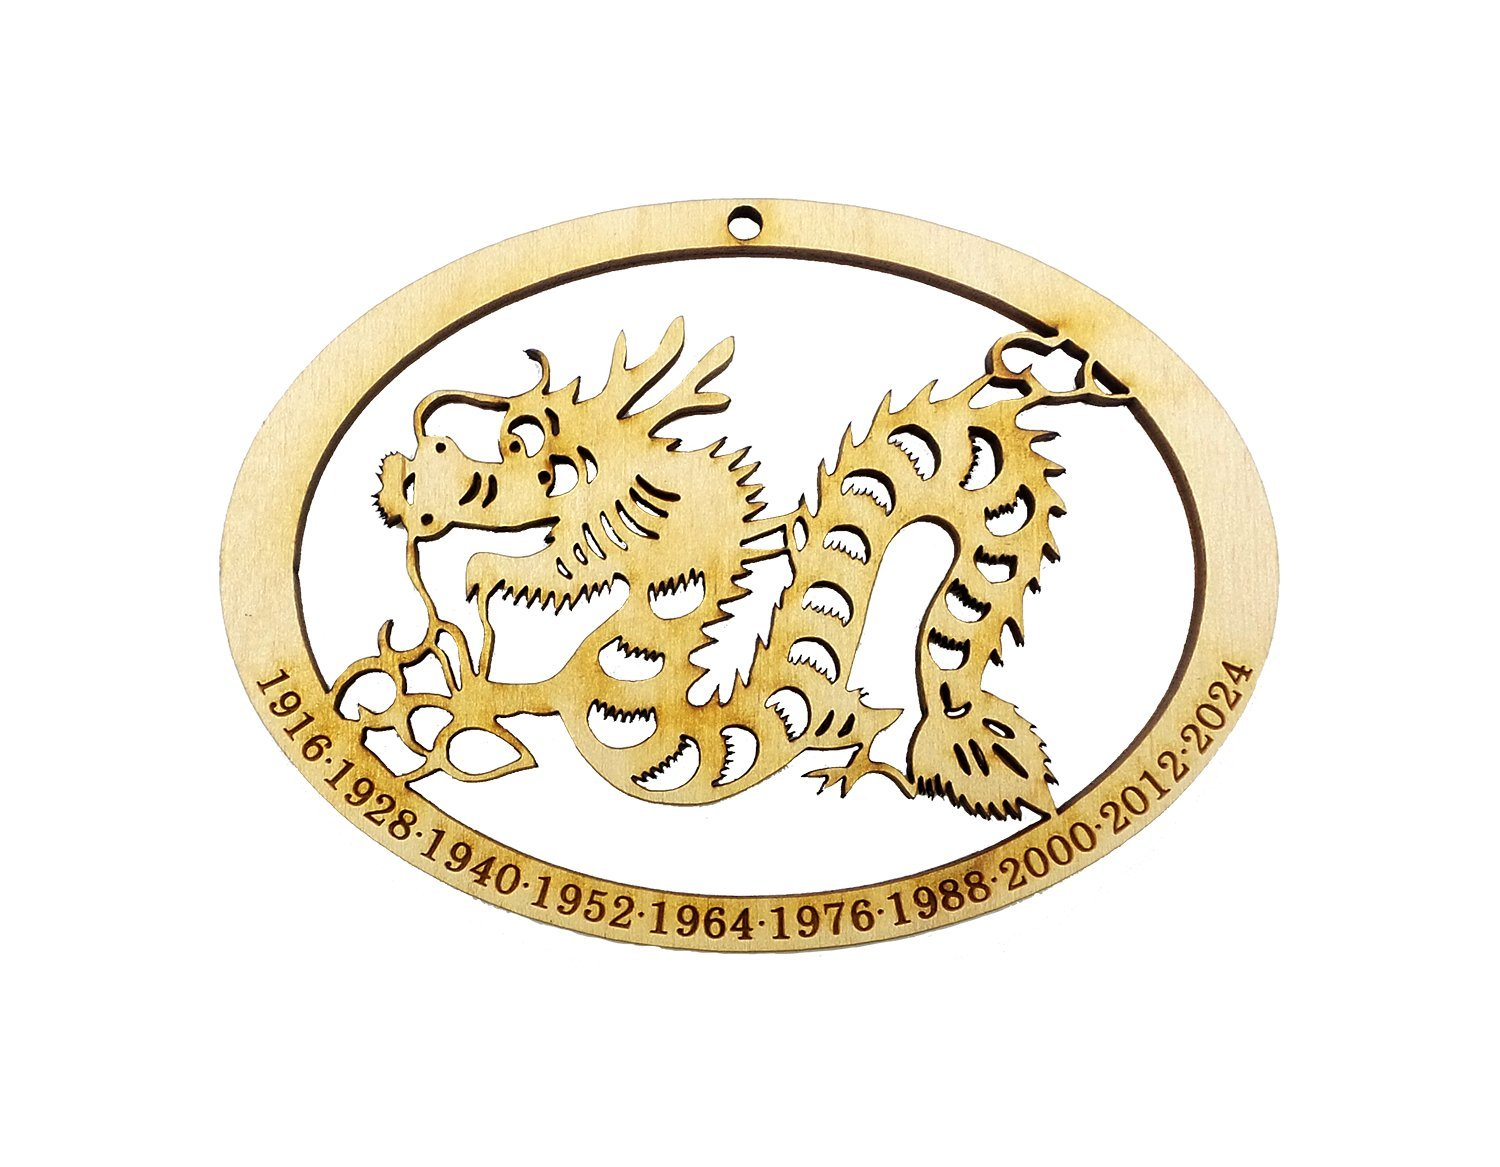 Chinese Zodiac Dragon Ornament - Year of the Dragon Ornament